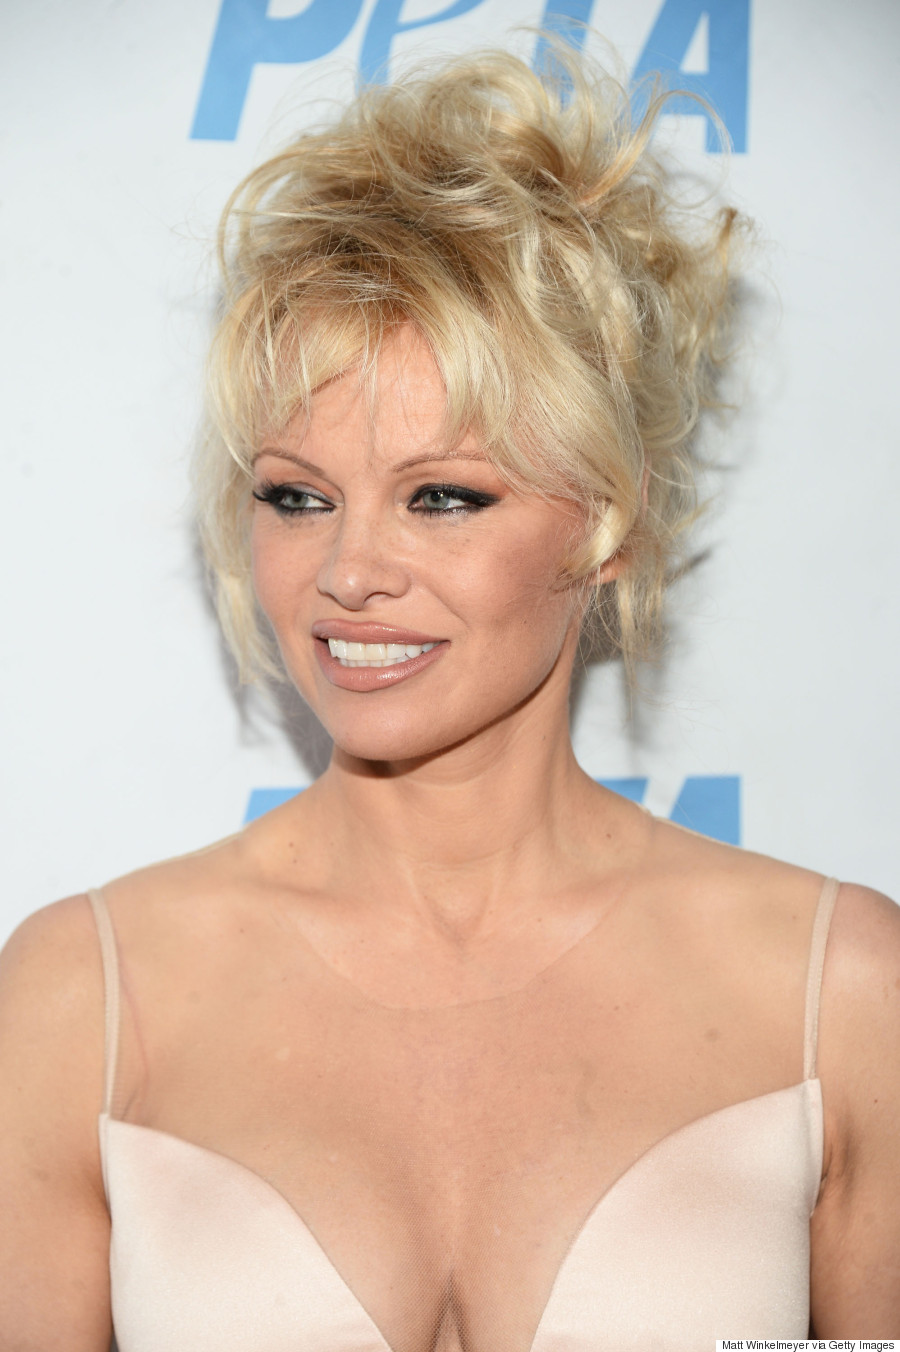 Pamela Anderson Says She Regrets Her Boob Job